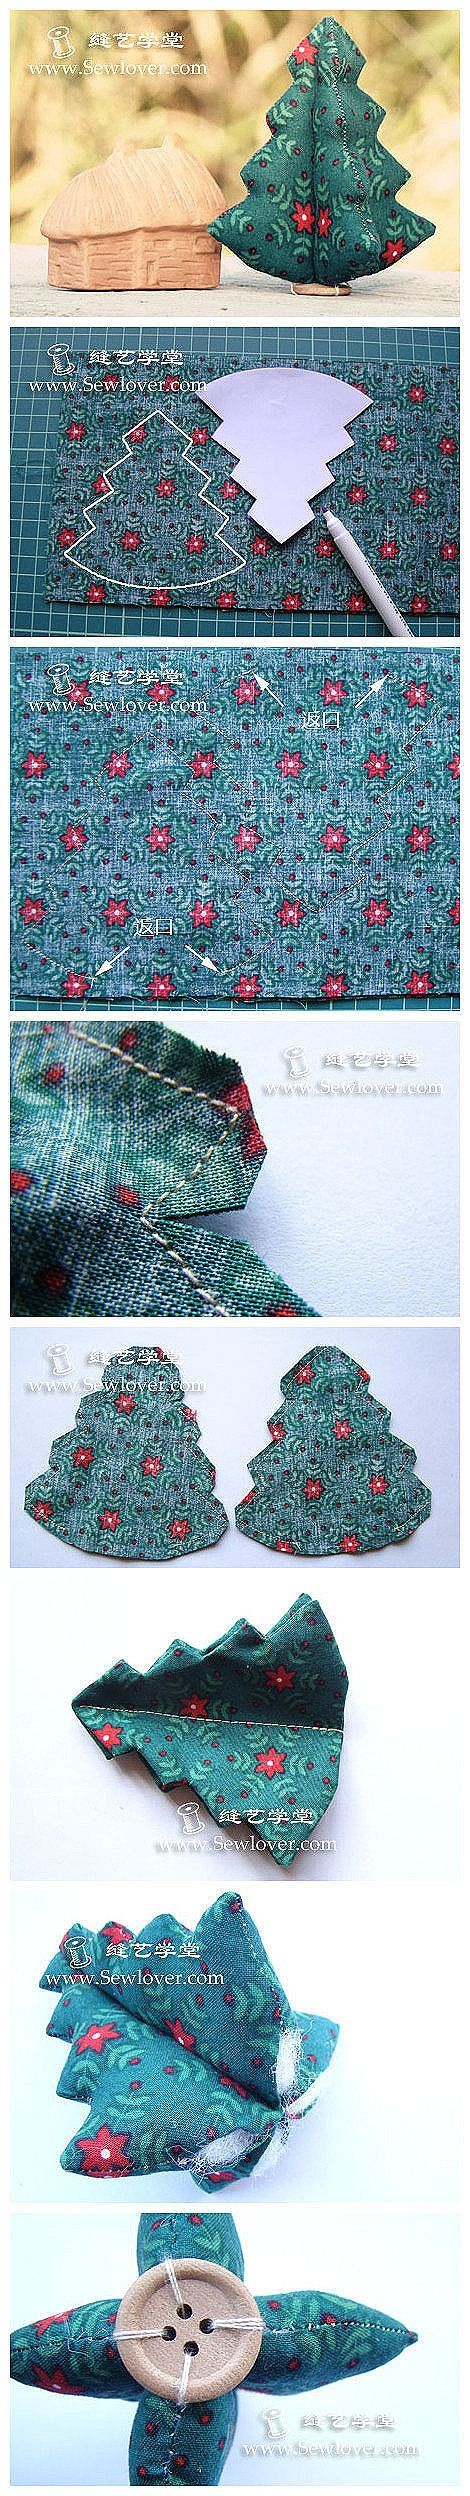 How to sew cute fabric christmas trees step by step diy tutorial how to sew cute fabric christmas trees step by step diy tutorial instructions how to how to do diy instructions crafts do it yourself solutioingenieria Choice Image